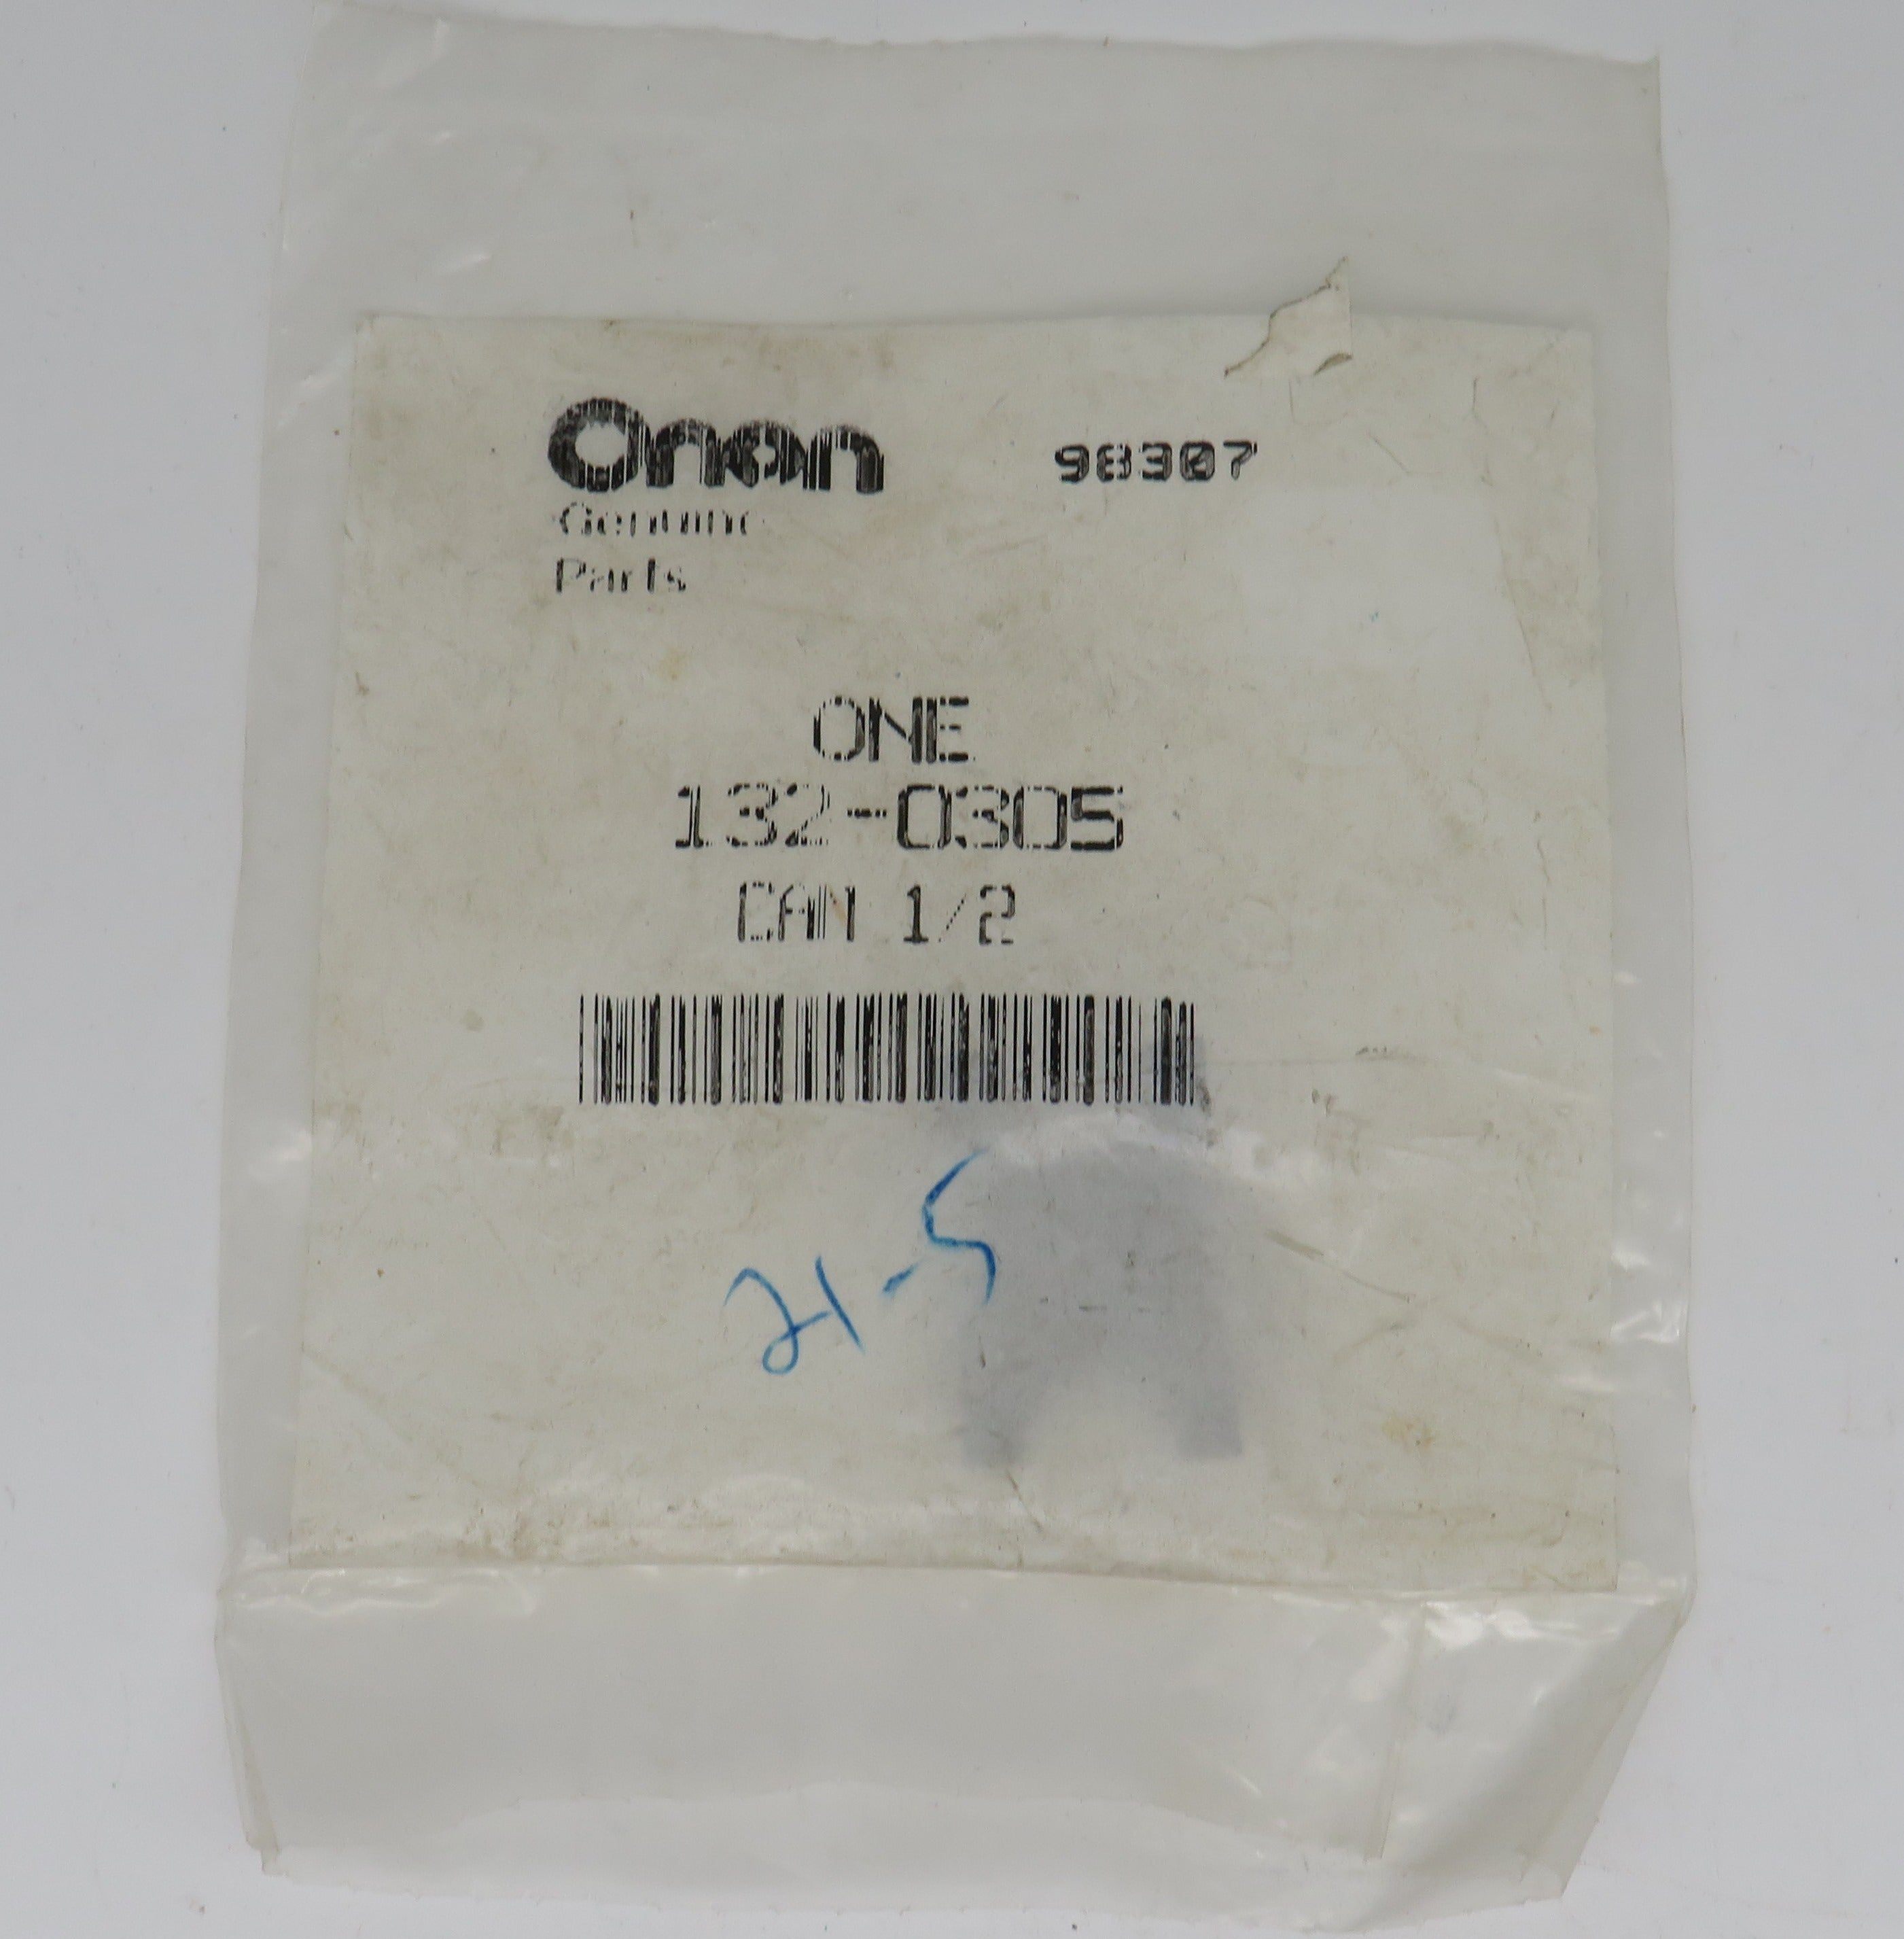 132-0305 Onan CAM 1/2, Also Johnson 01-42910 goes with pump 132-0284 or Johnson 10-35038-5E